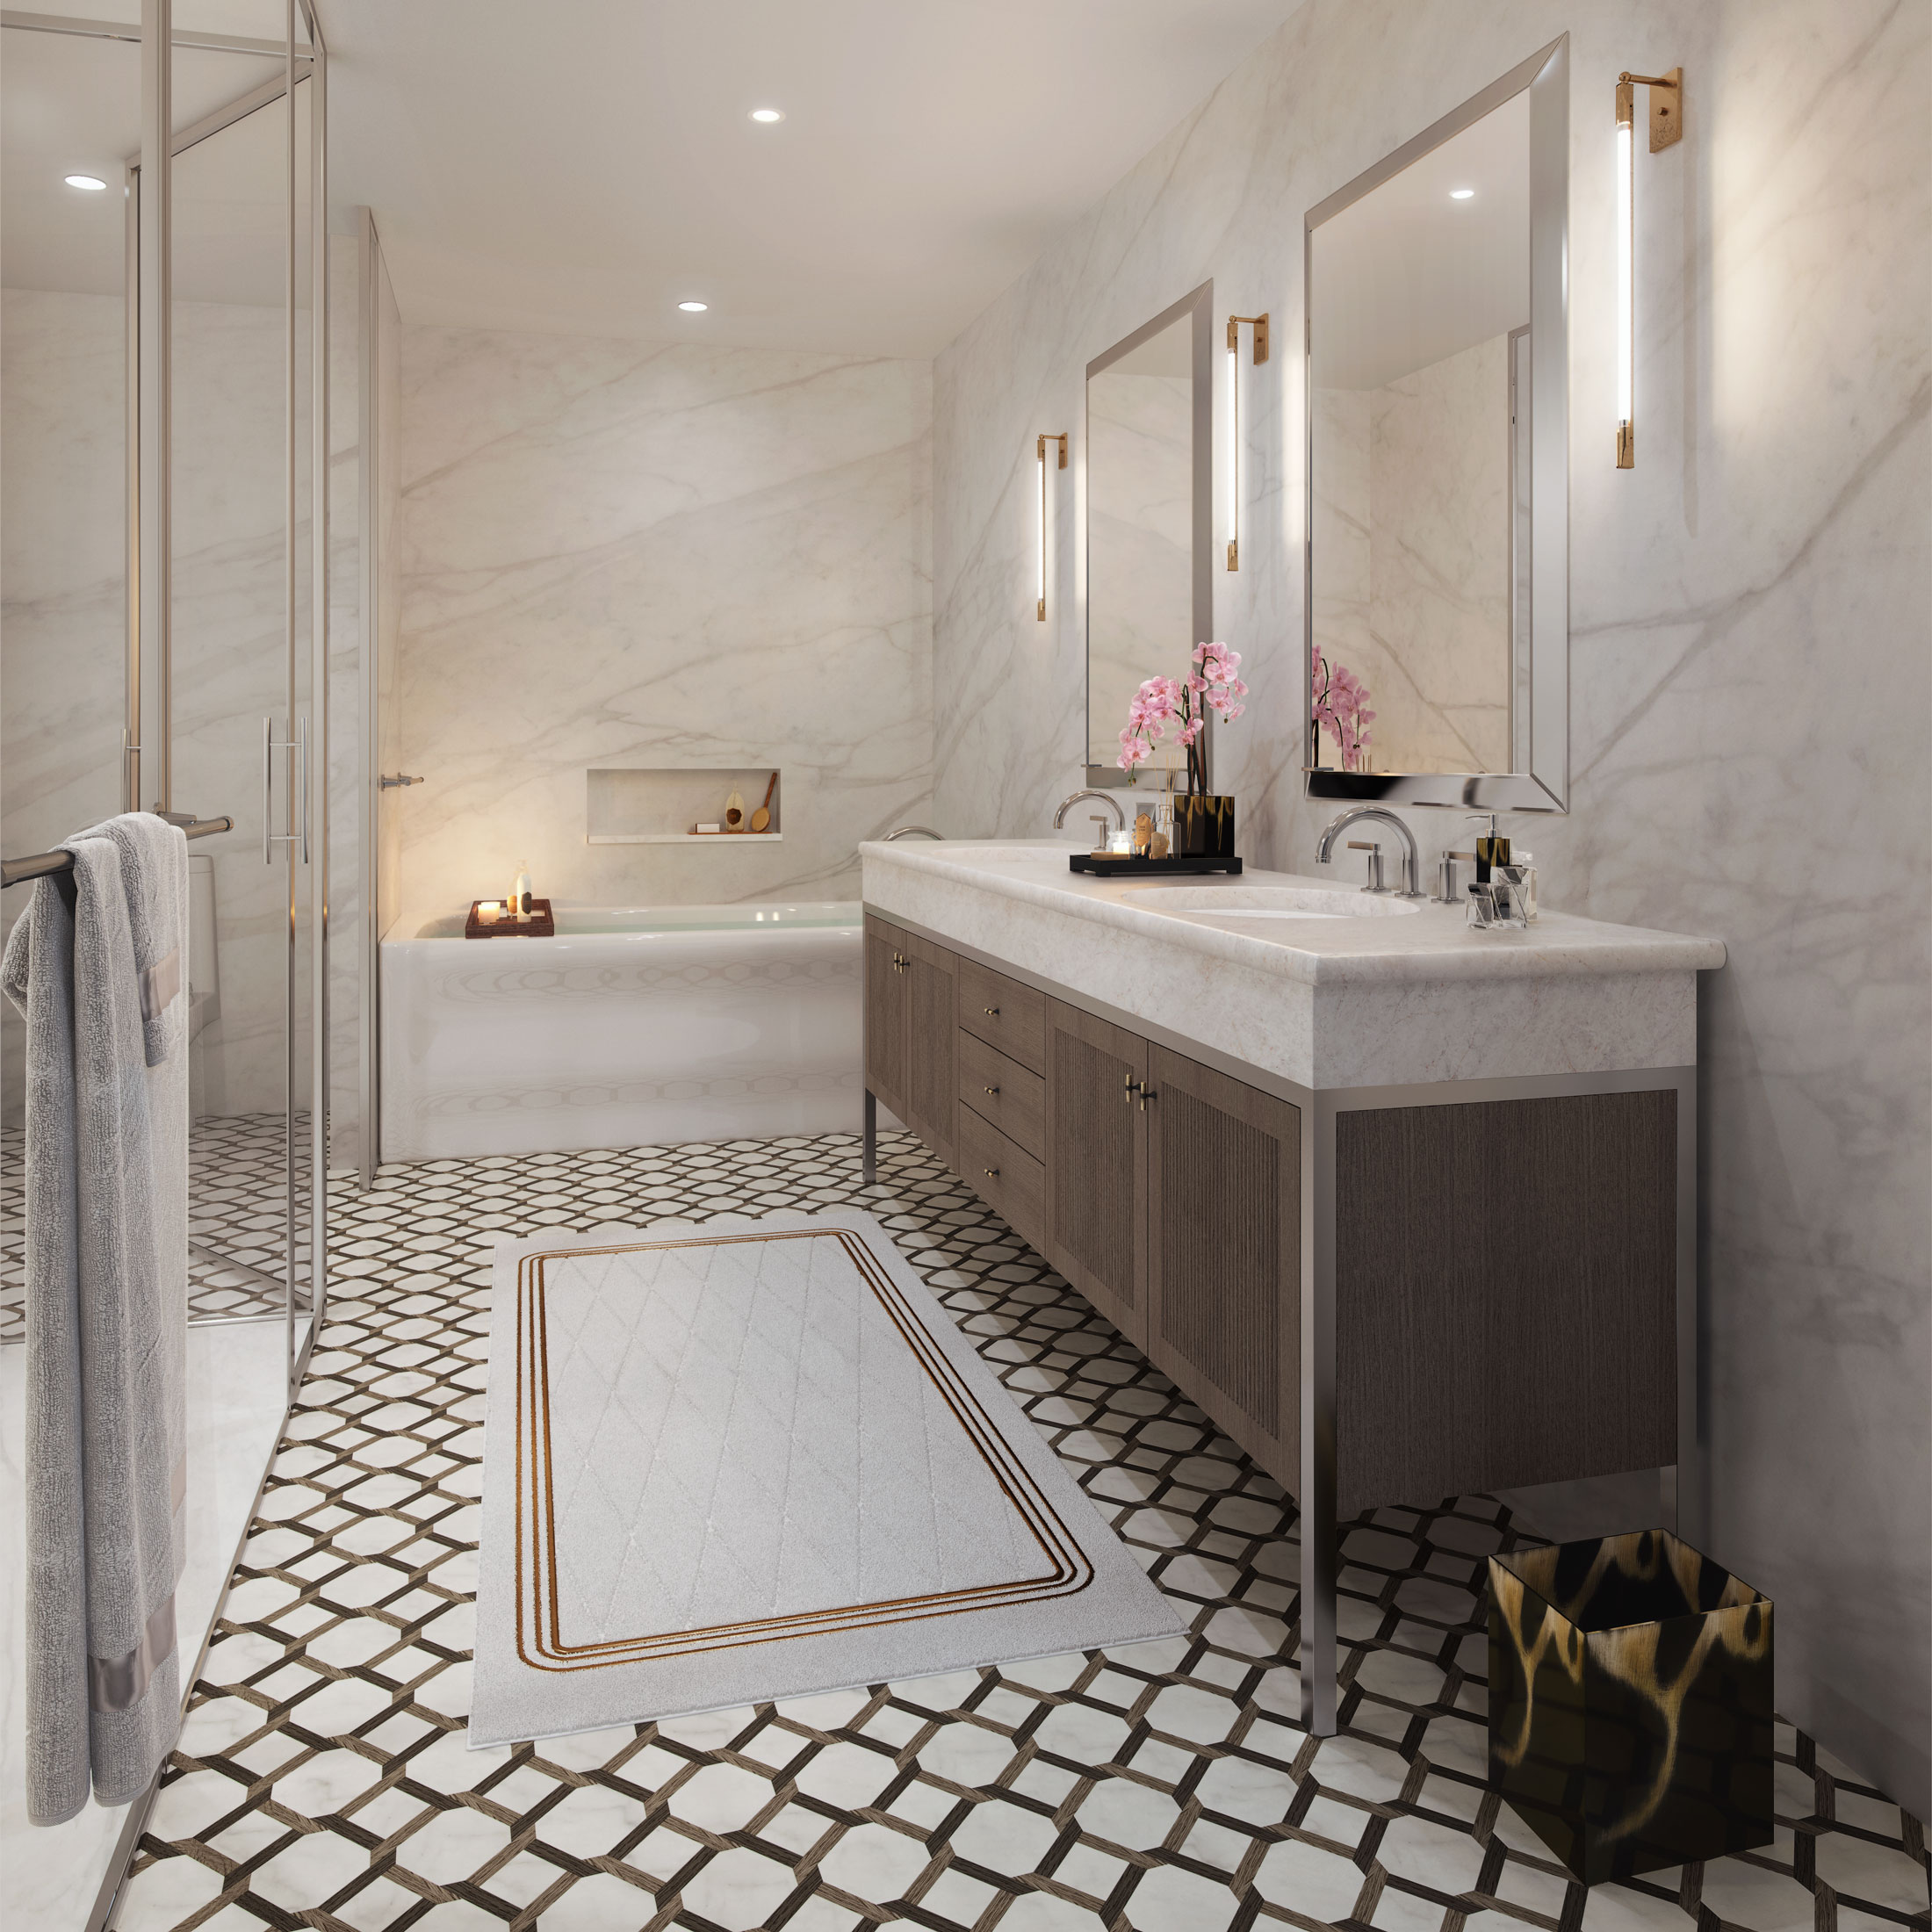 Architectural Rendering of the master bathroom of the 207 West 79th Street project located on the Upper West Side, New York City